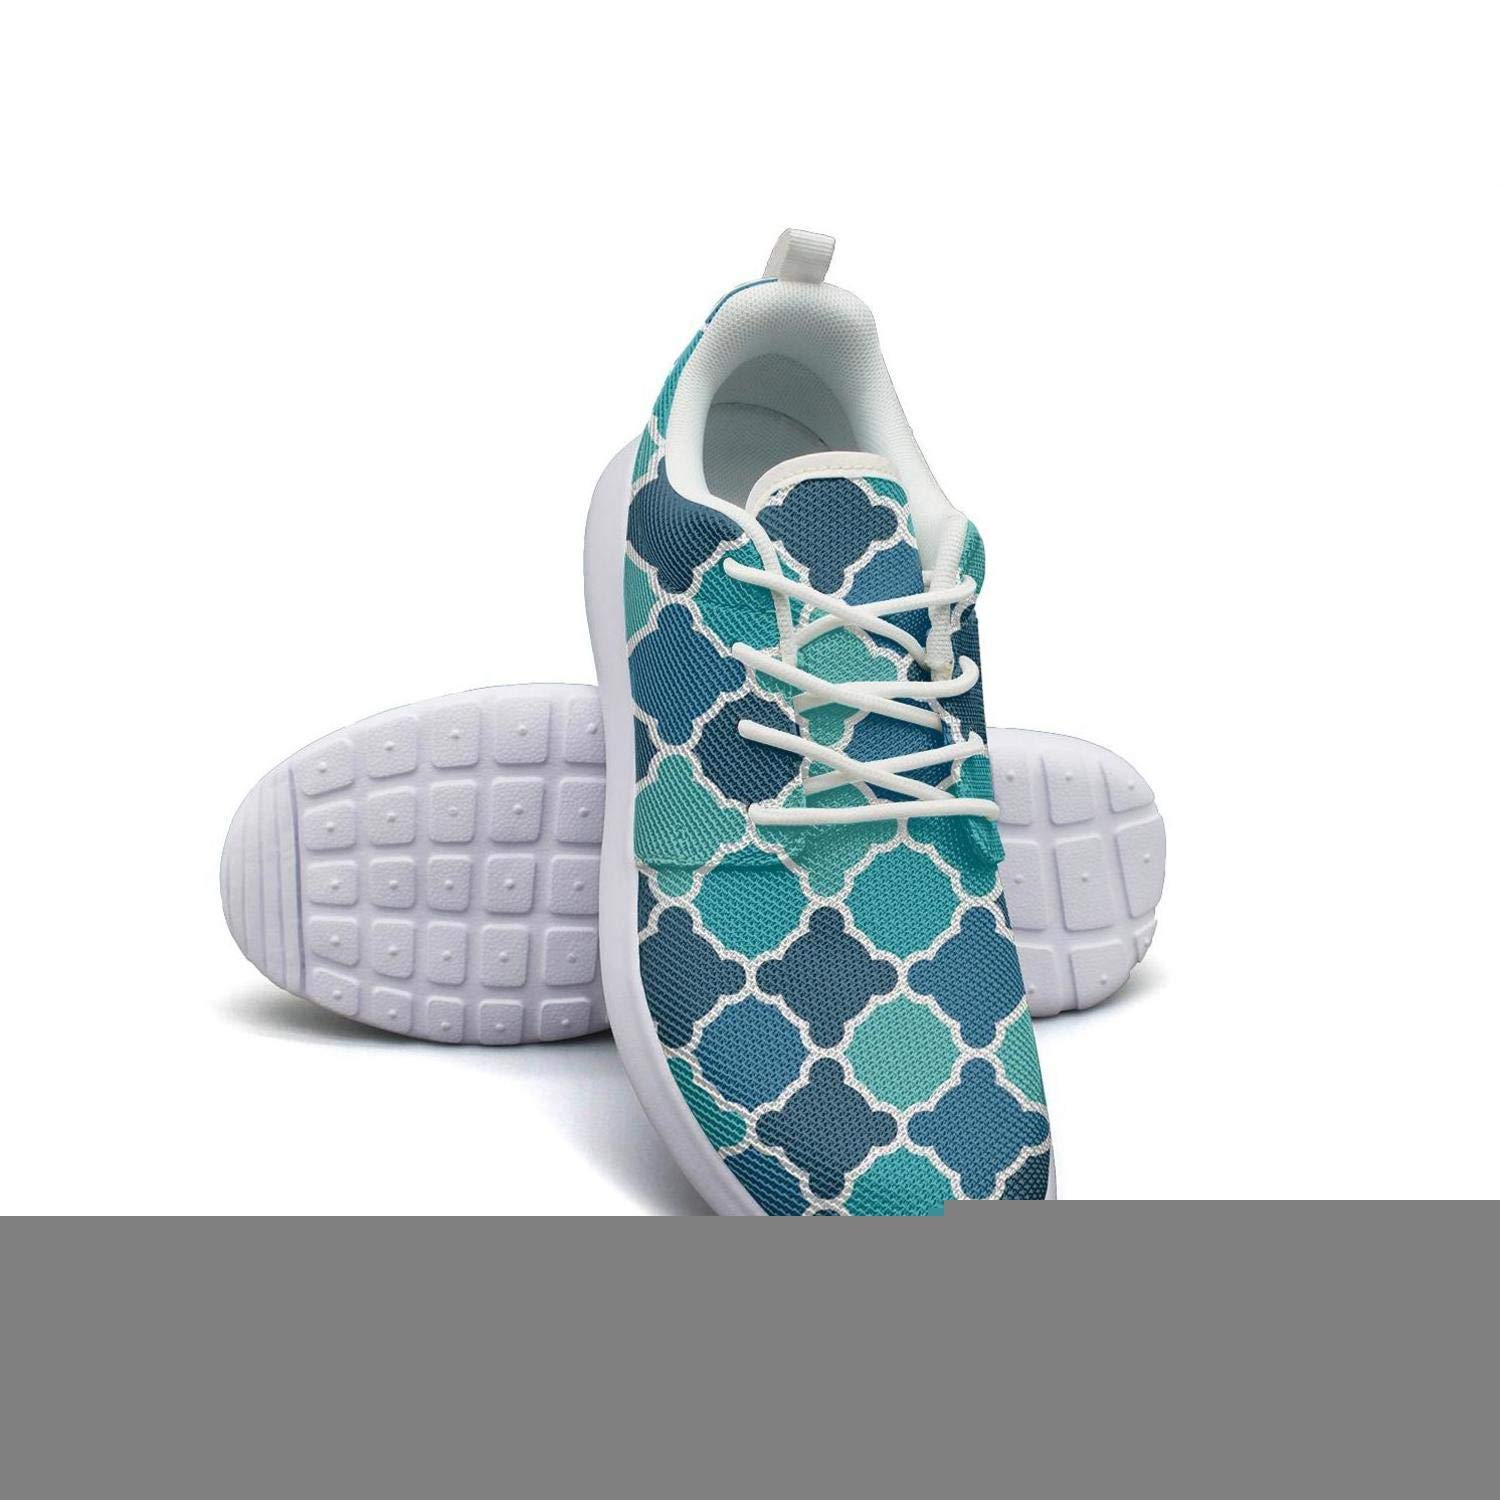 ERSER Lattice Fencing Mosaice Checkerboard Running Shoes for Plantar Fasciitis for Women